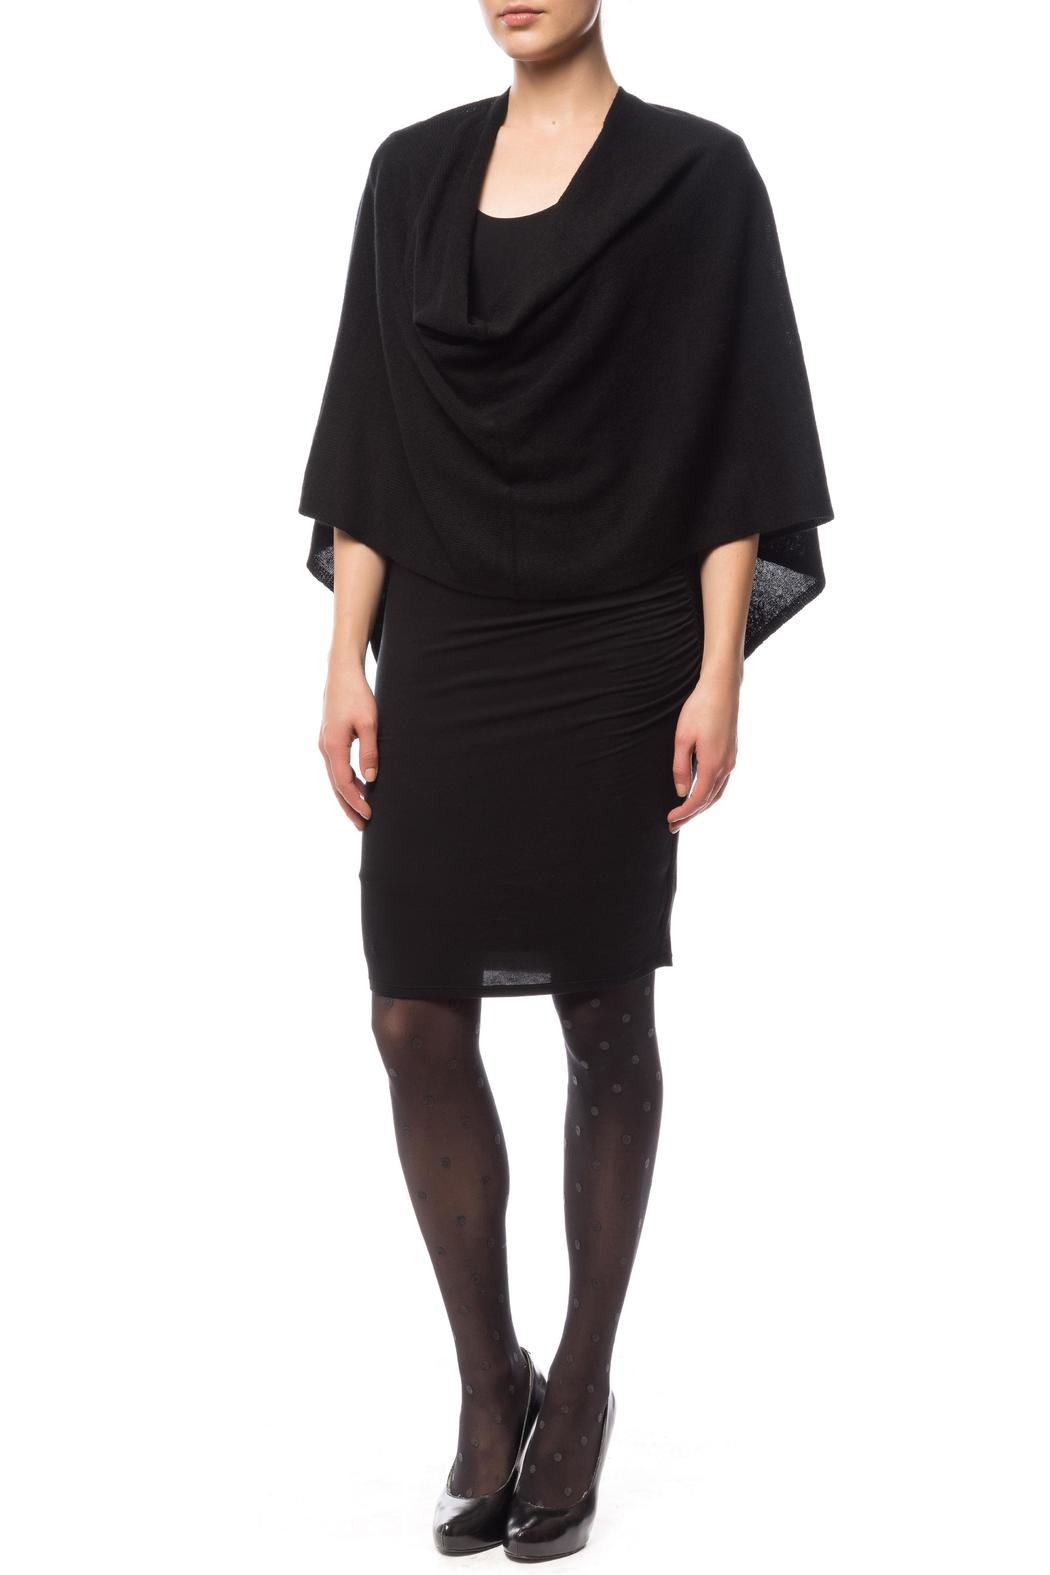 Claudia nichole Cashmere Topper Ebony - Front Cropped Image